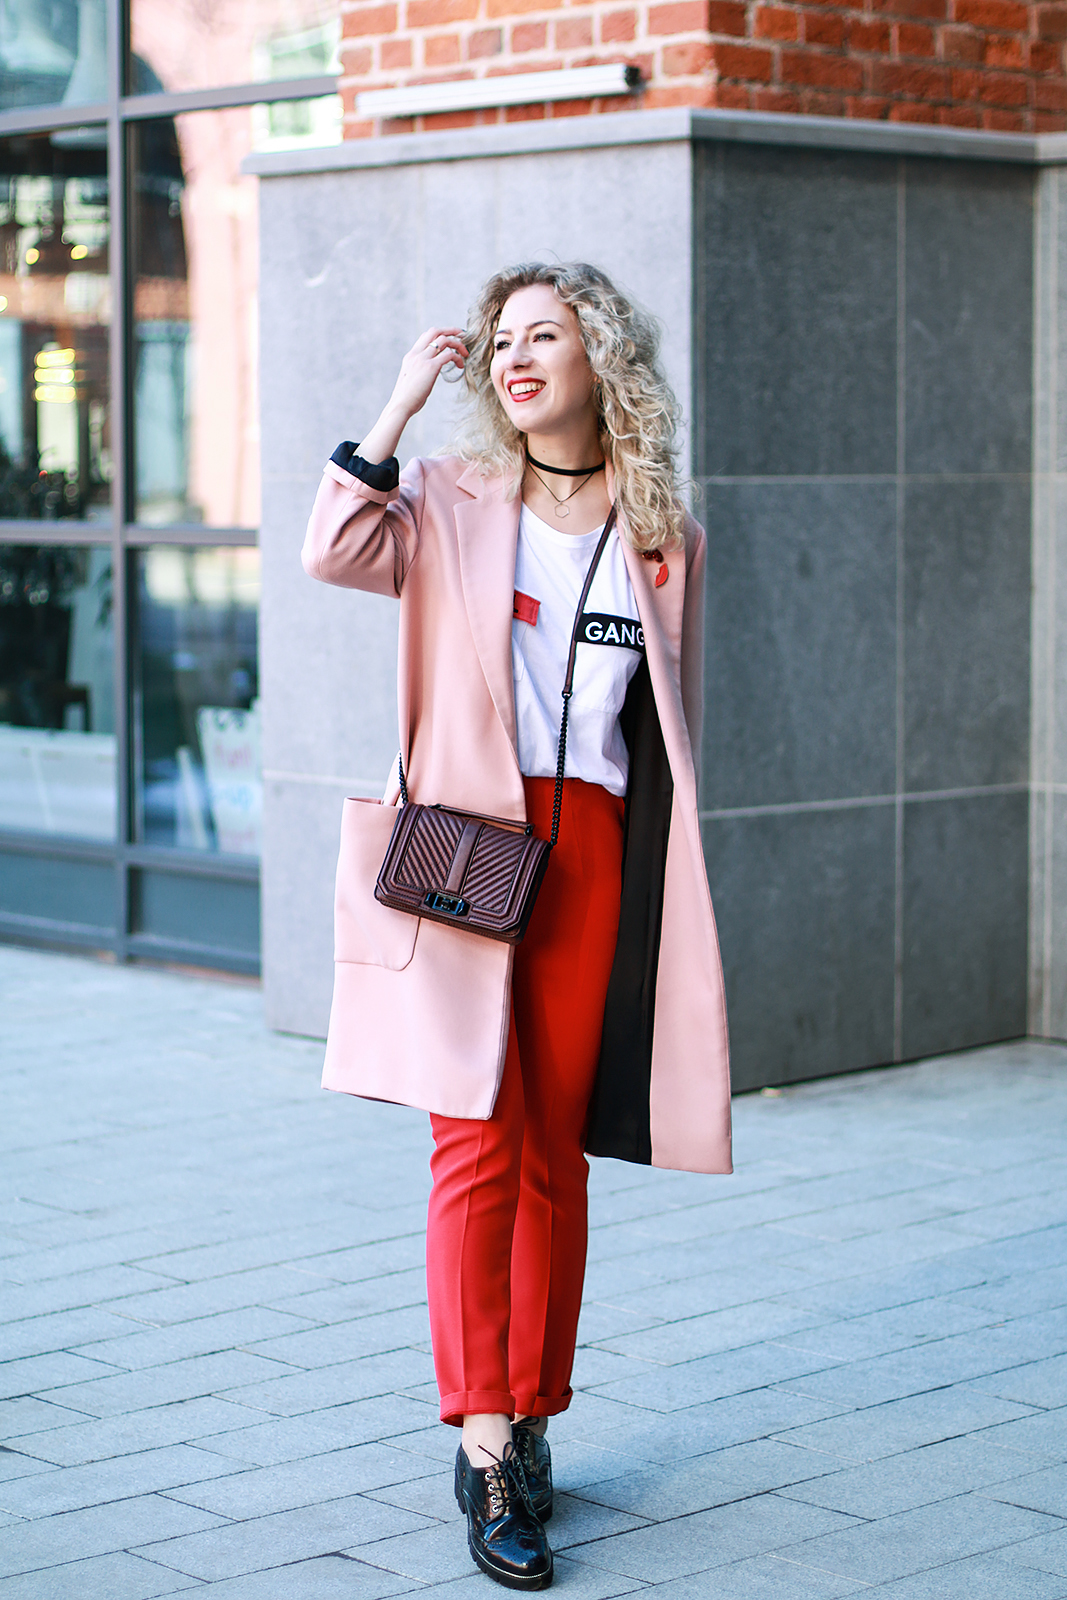 Margarita_Maslova_Ritalifestyle_Fashion_blogger_Moscow_red_pink_outfit_trend2017_5